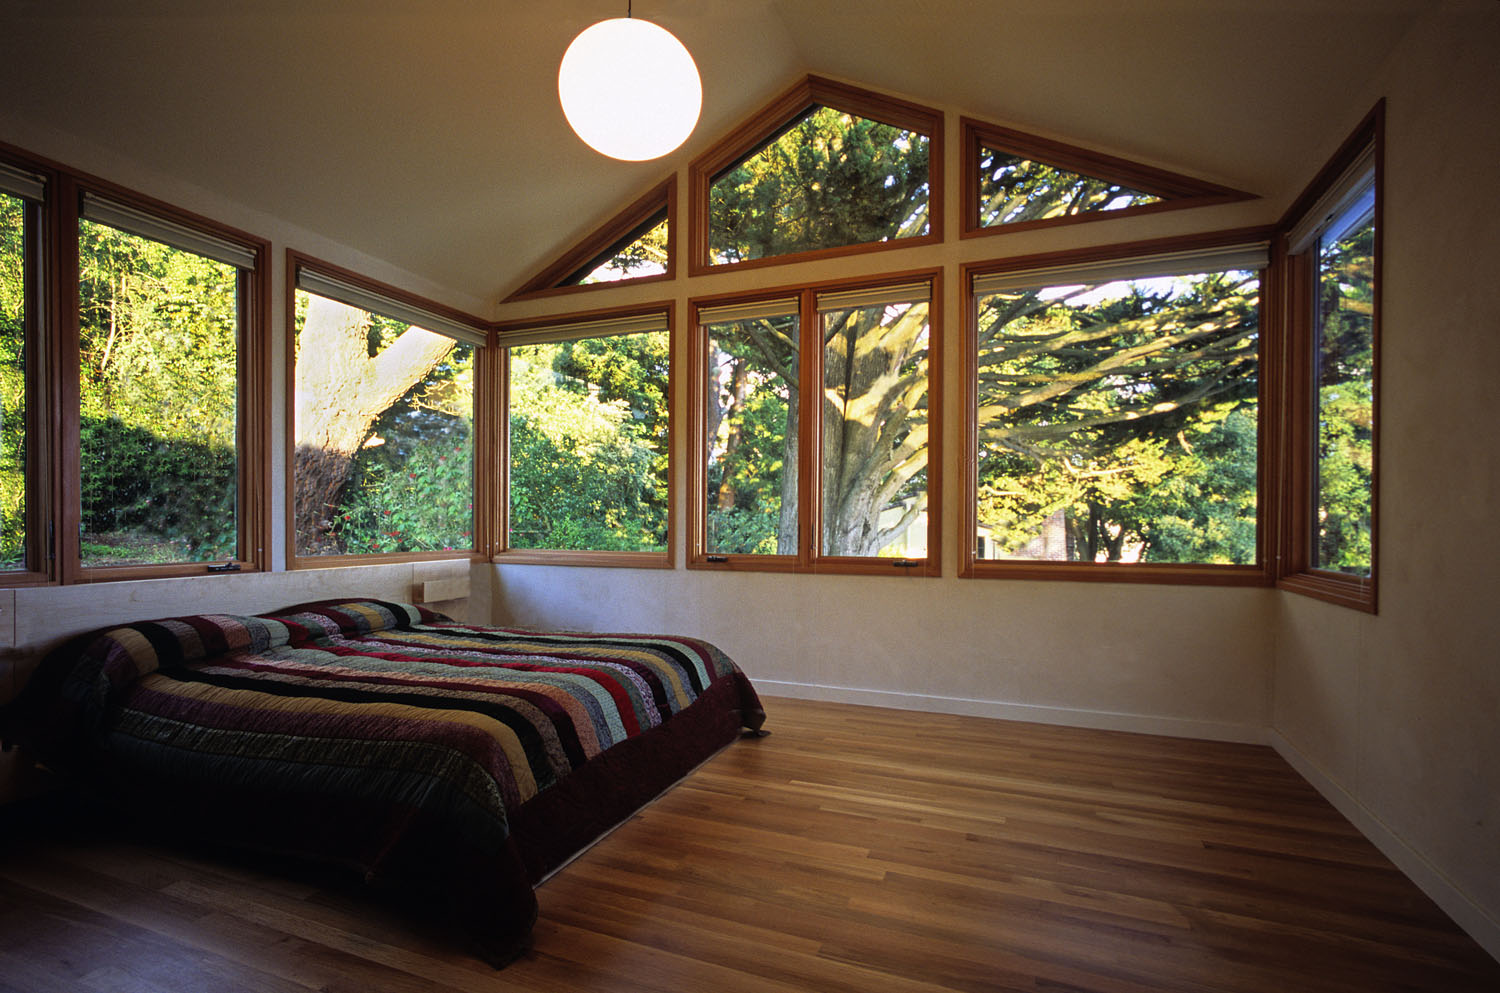 A two-story addition and extensive renovation of a residence in the Berkeley Hills. The bedroom, nestled under a majestic cypress tree, looks out to the backyard, neighboring tile rooftops and a long view of San Francisco Bay.The general contractor was Shigoto Ya, www.shigoto-ya.com